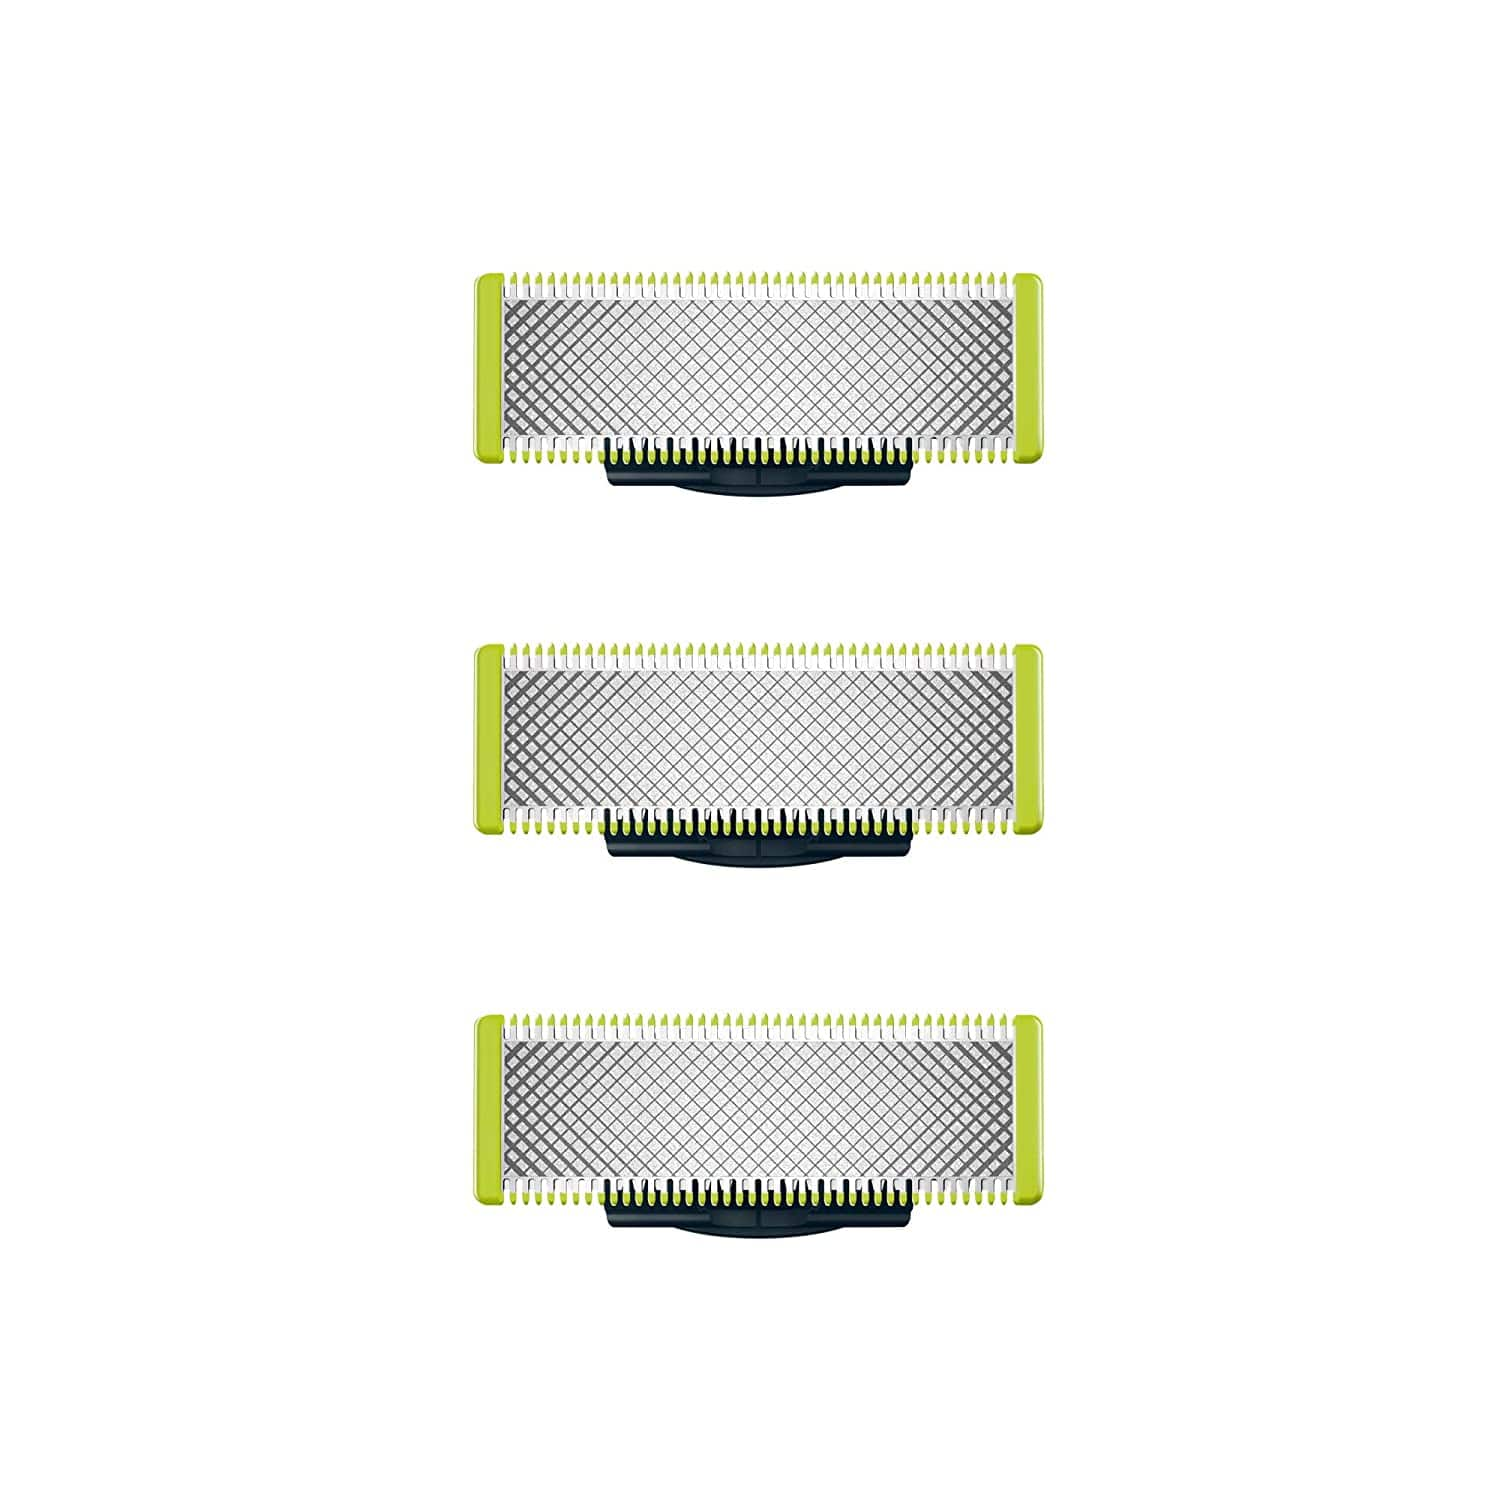 3-Count Philips Norelco QP220/80 OneBlade Replacement Blades $17.51 w/ S&S + Free Shipping